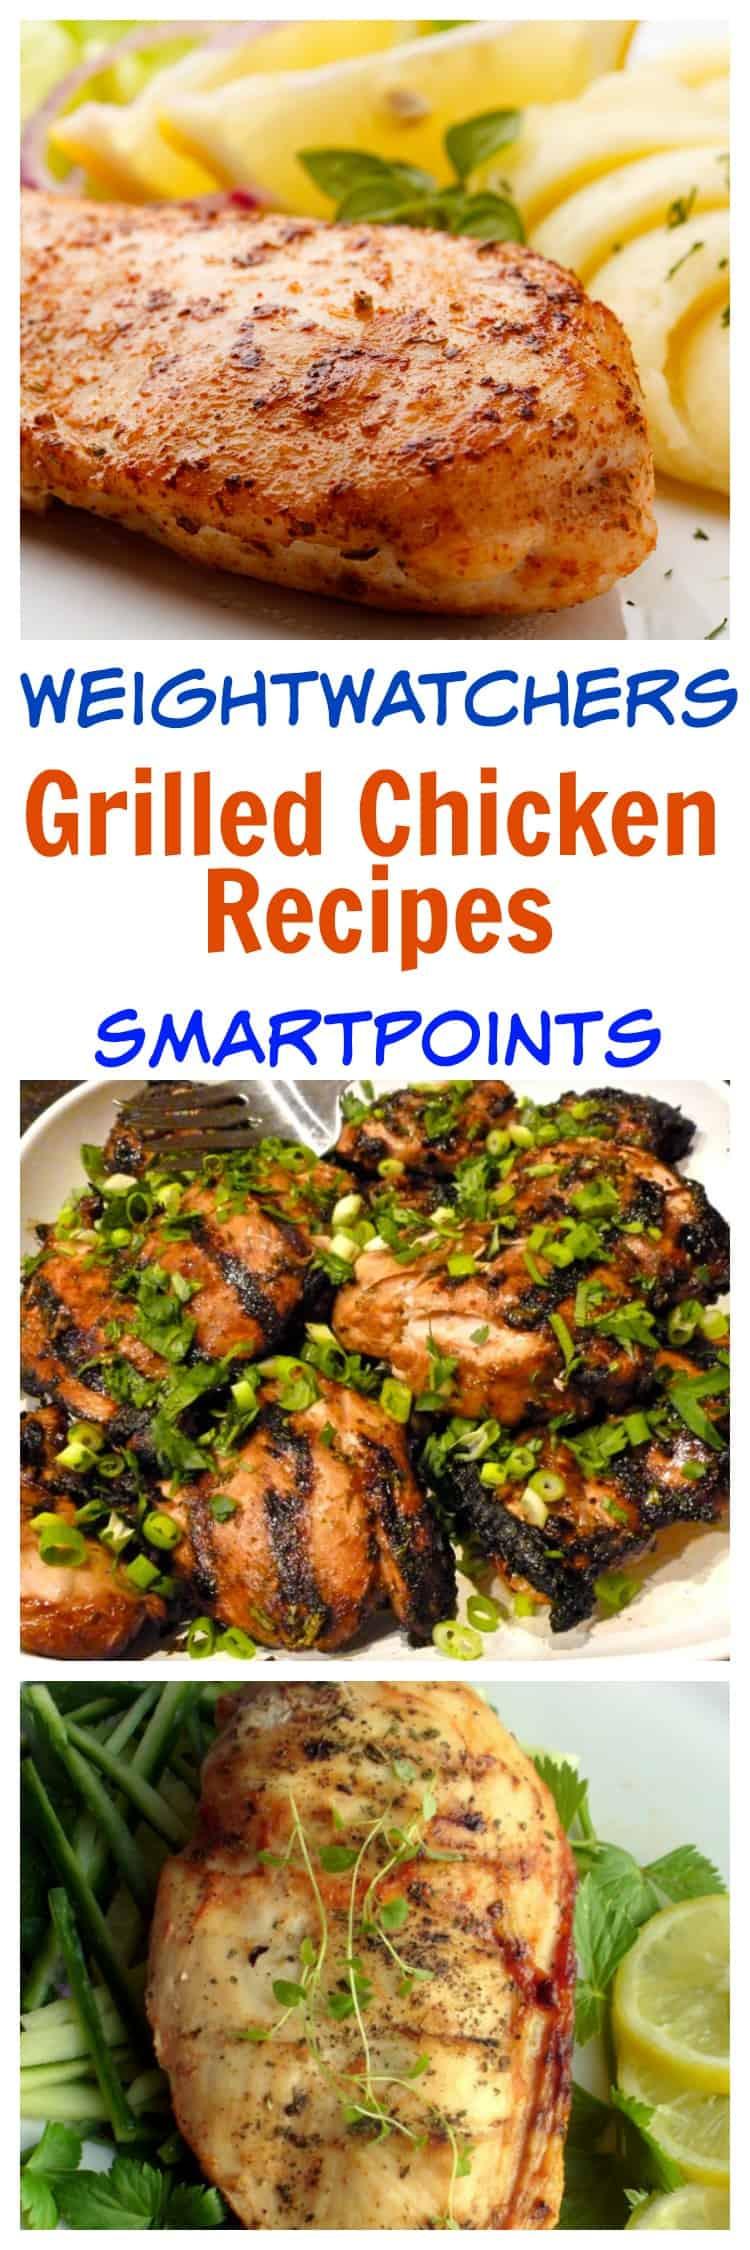 Low Calorie Grilled Chicken Recipes  27 Low Calorie Grilled Chicken Recipes